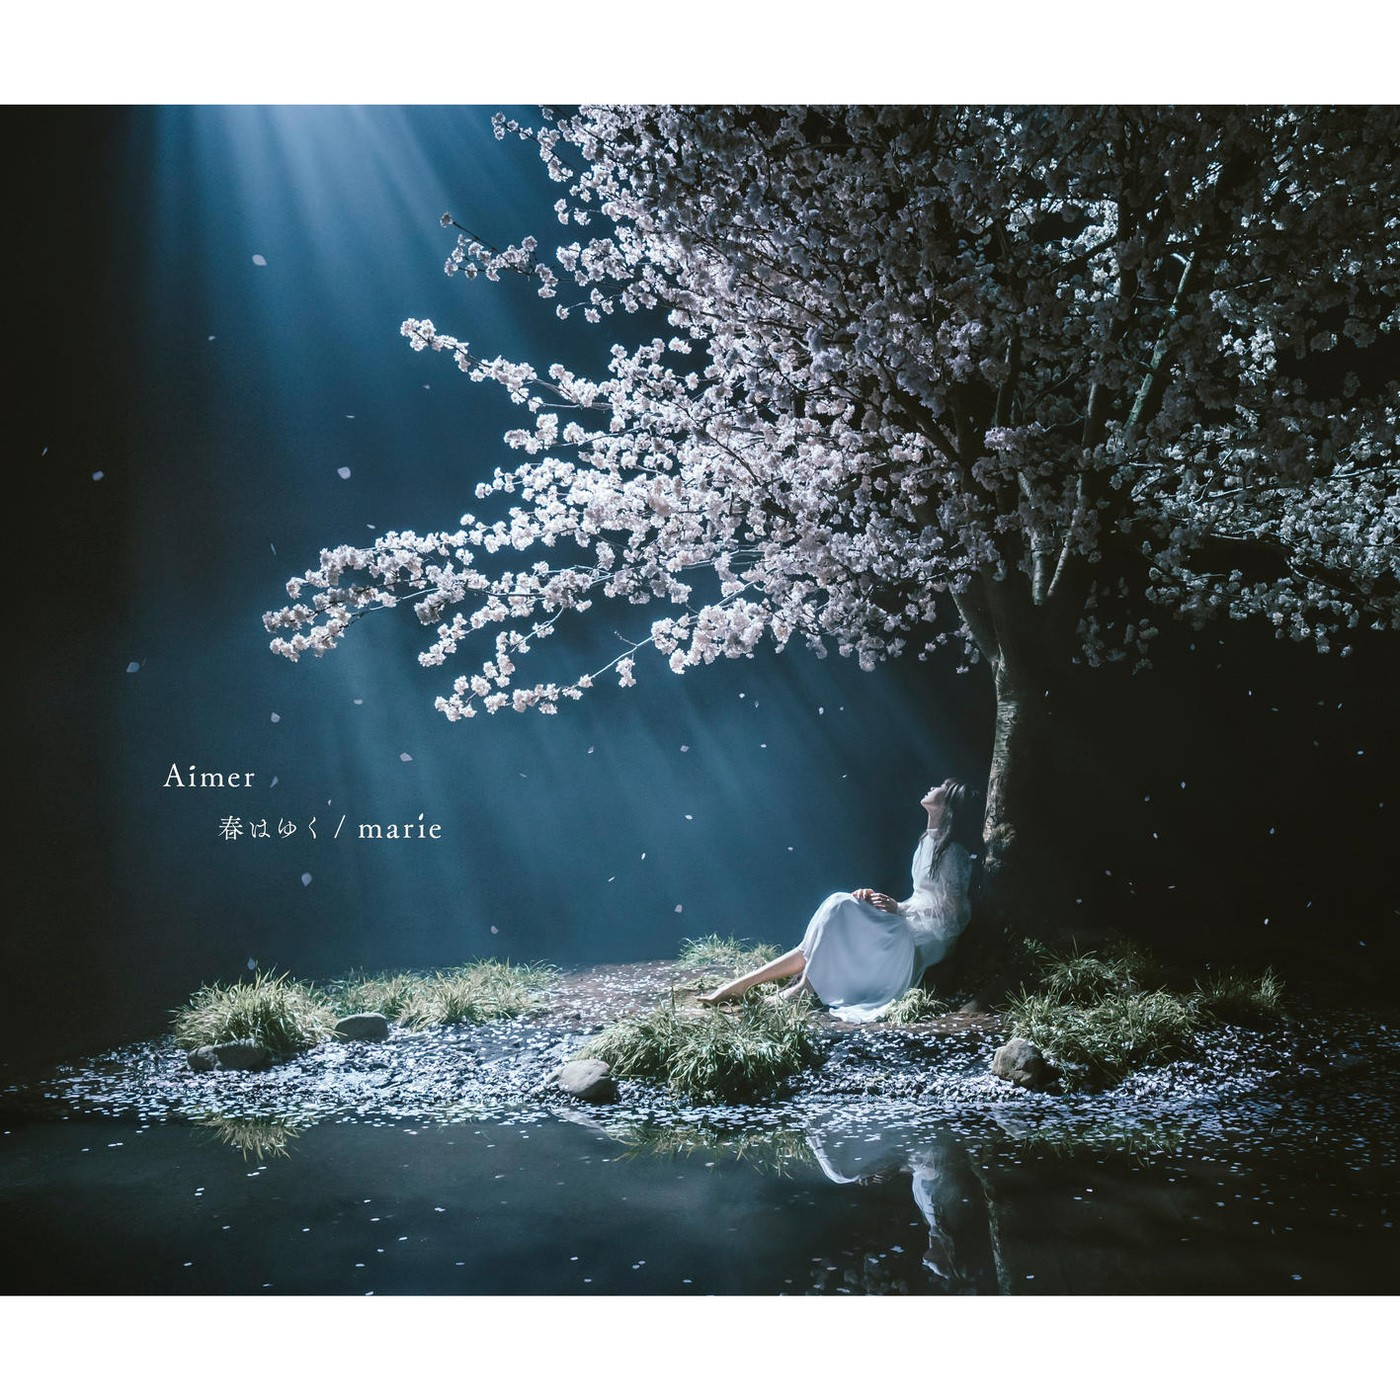 Aimer – 春はゆく / marie [FLAC + MP3 320 + DVD ISO] [2020.03.25]